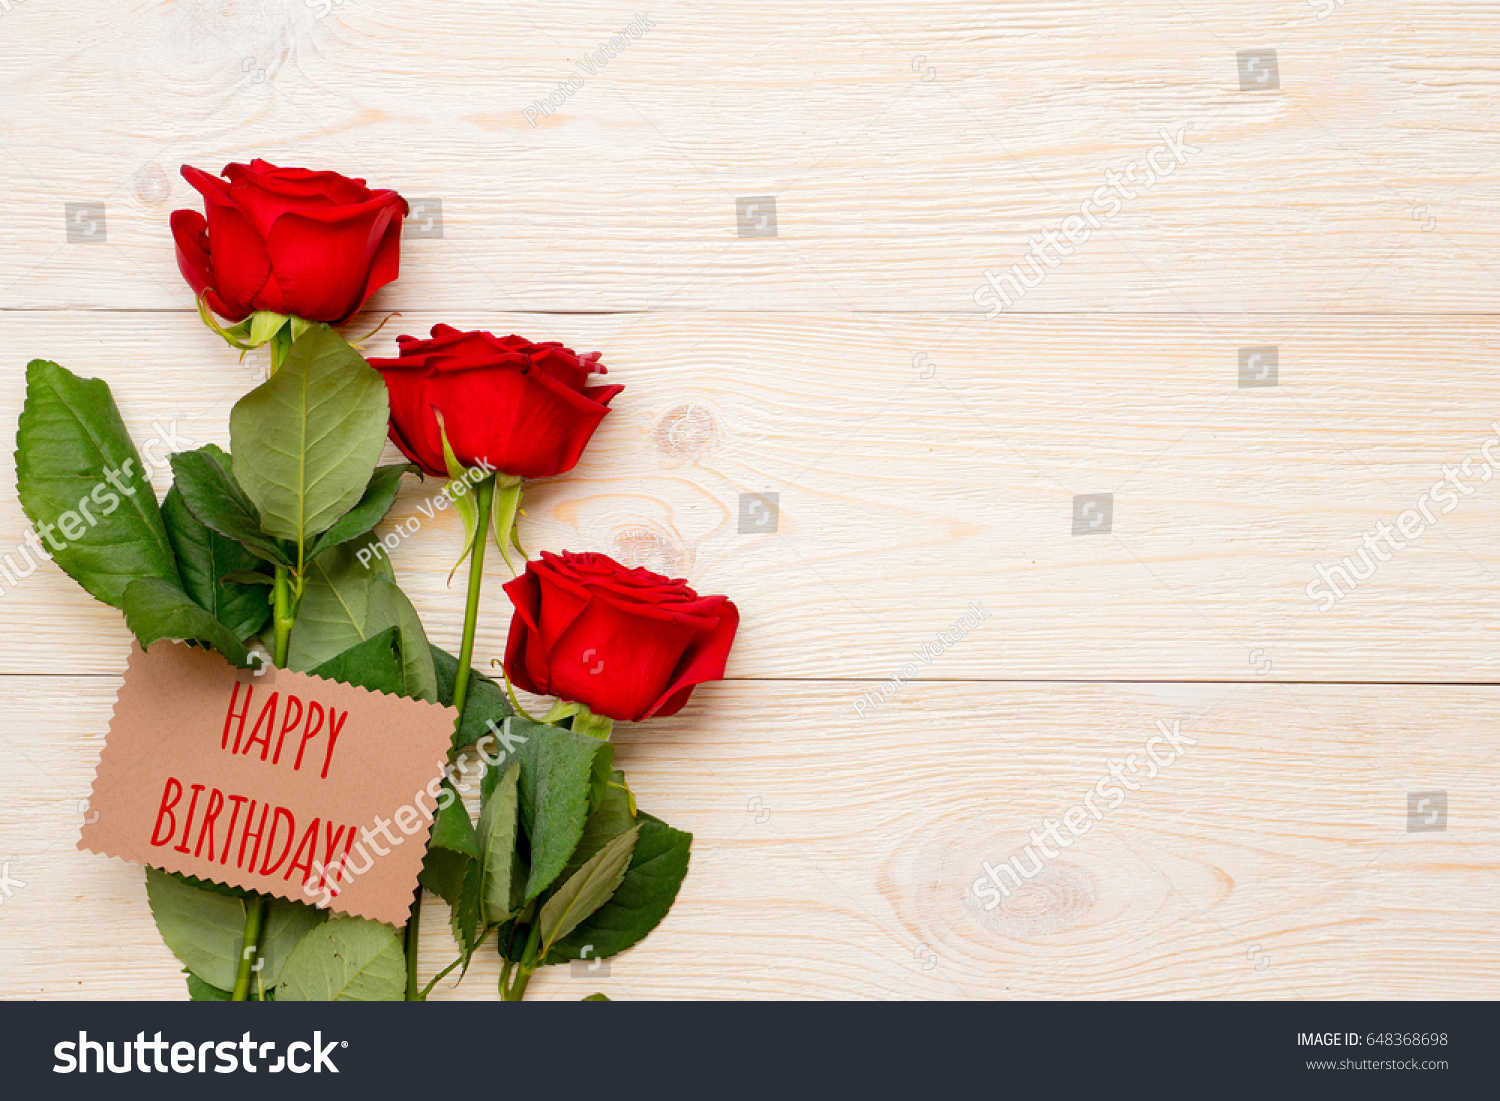 Happy Birthday Greeting Text On Craft Stock Photo Royalty Free